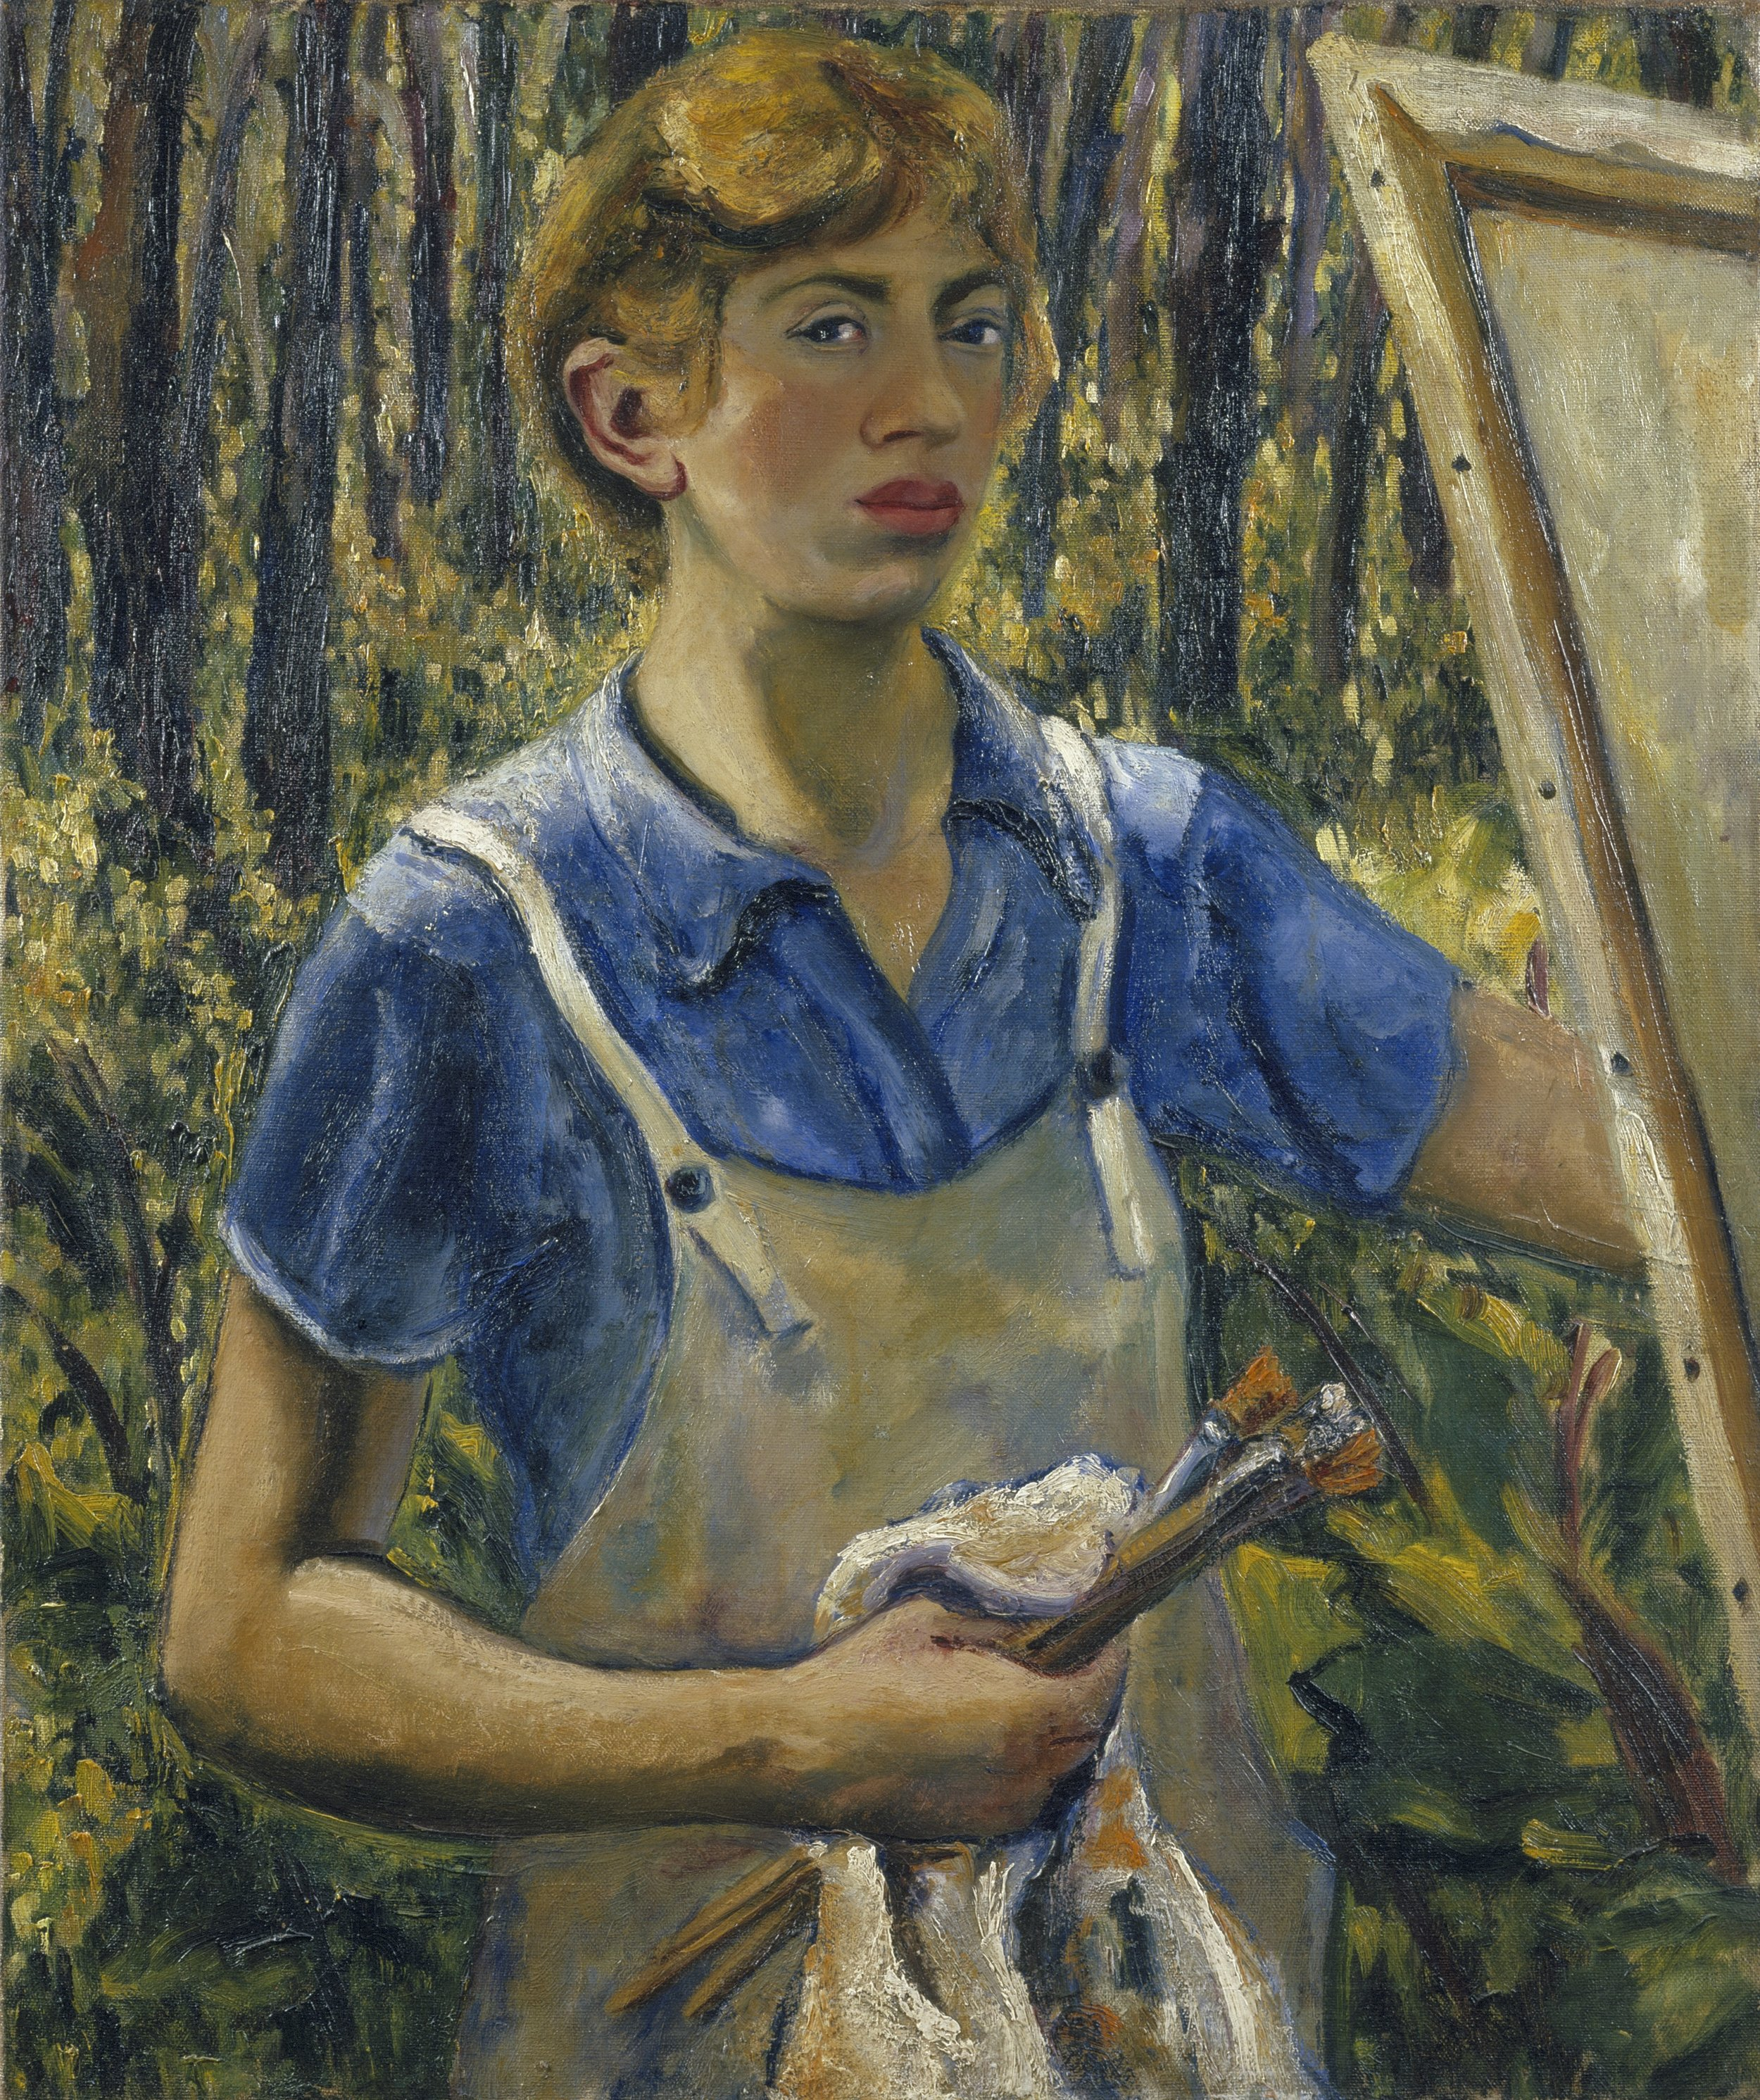 Lee Krasner, Self-Portrait, c. 1928, The Jewish Museum, New York. © The Pollock-Krasner Foundation. Courtesy the Jewish Museum, New York.